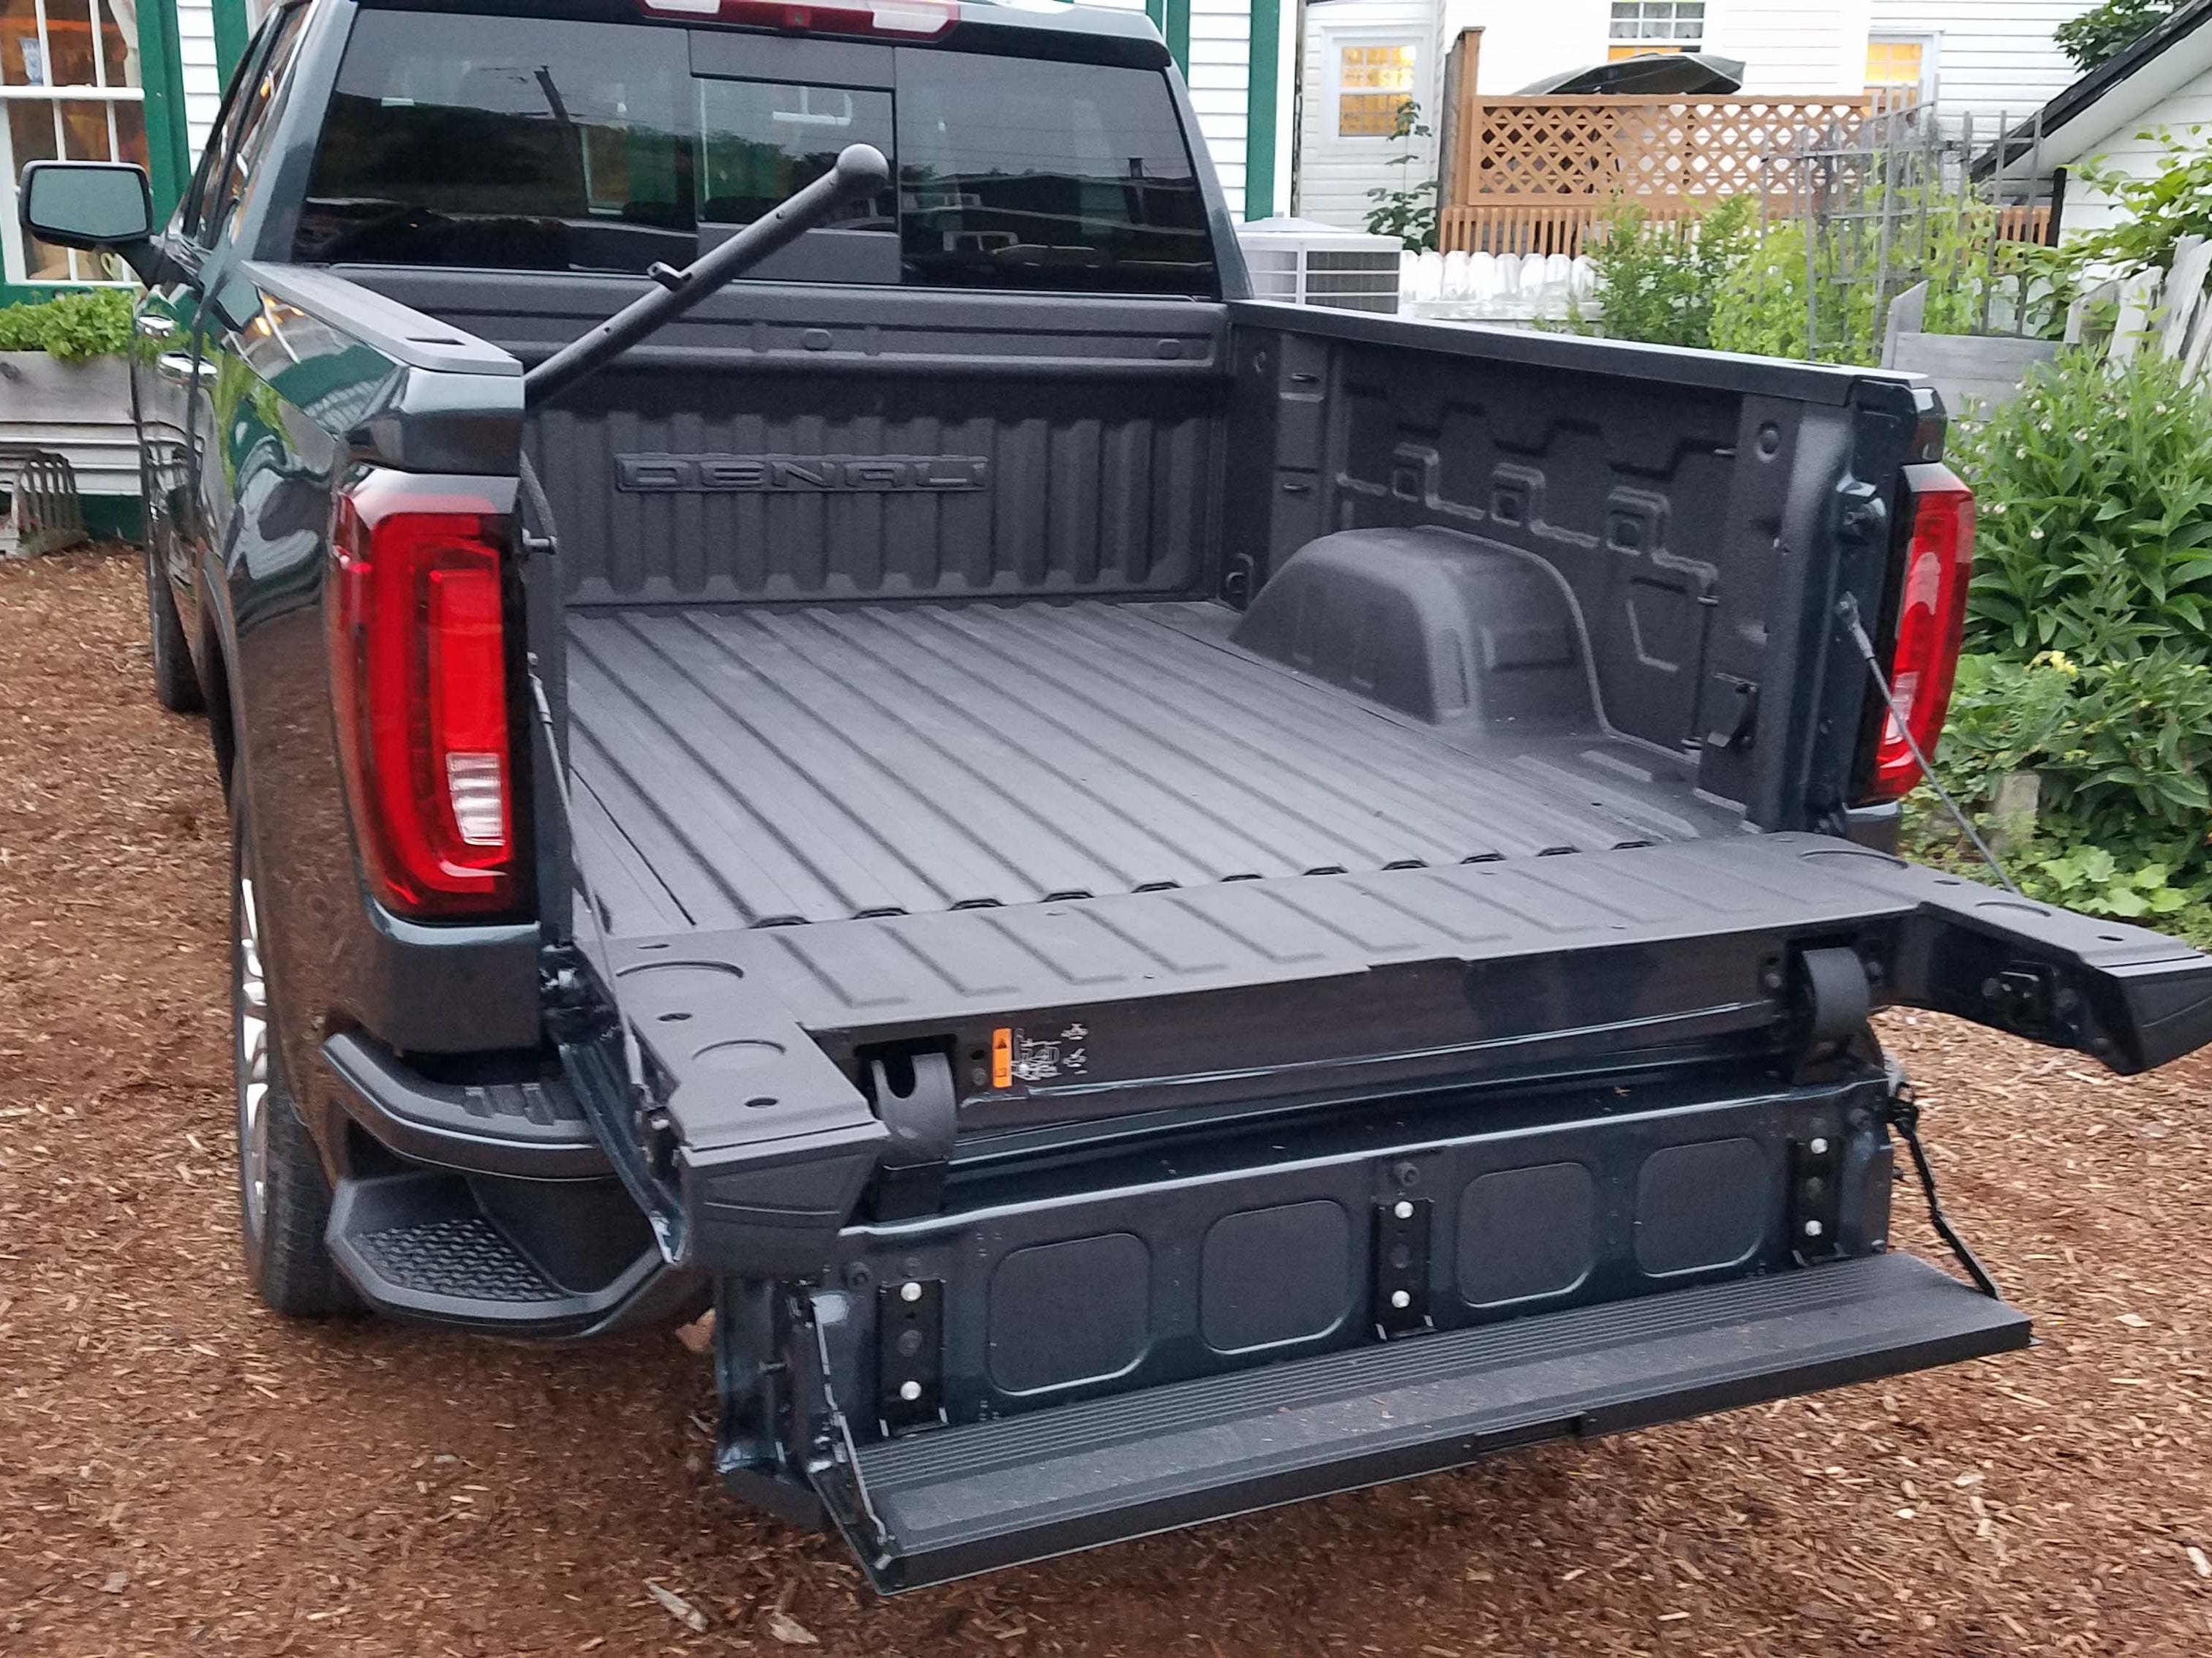 GMC Sierra MultiPro tailgate, Step 6: With the full gate and inner gate down, the load-stop shelf now acts as a step, creating a two-step staircase into the bed. GMC/Chevy were already innovators in this space with their corner step,  but the staircase makes easy bed entry when carrying big items. Say goodbye to hiking your knee up onto the tailgate to get in the bed.